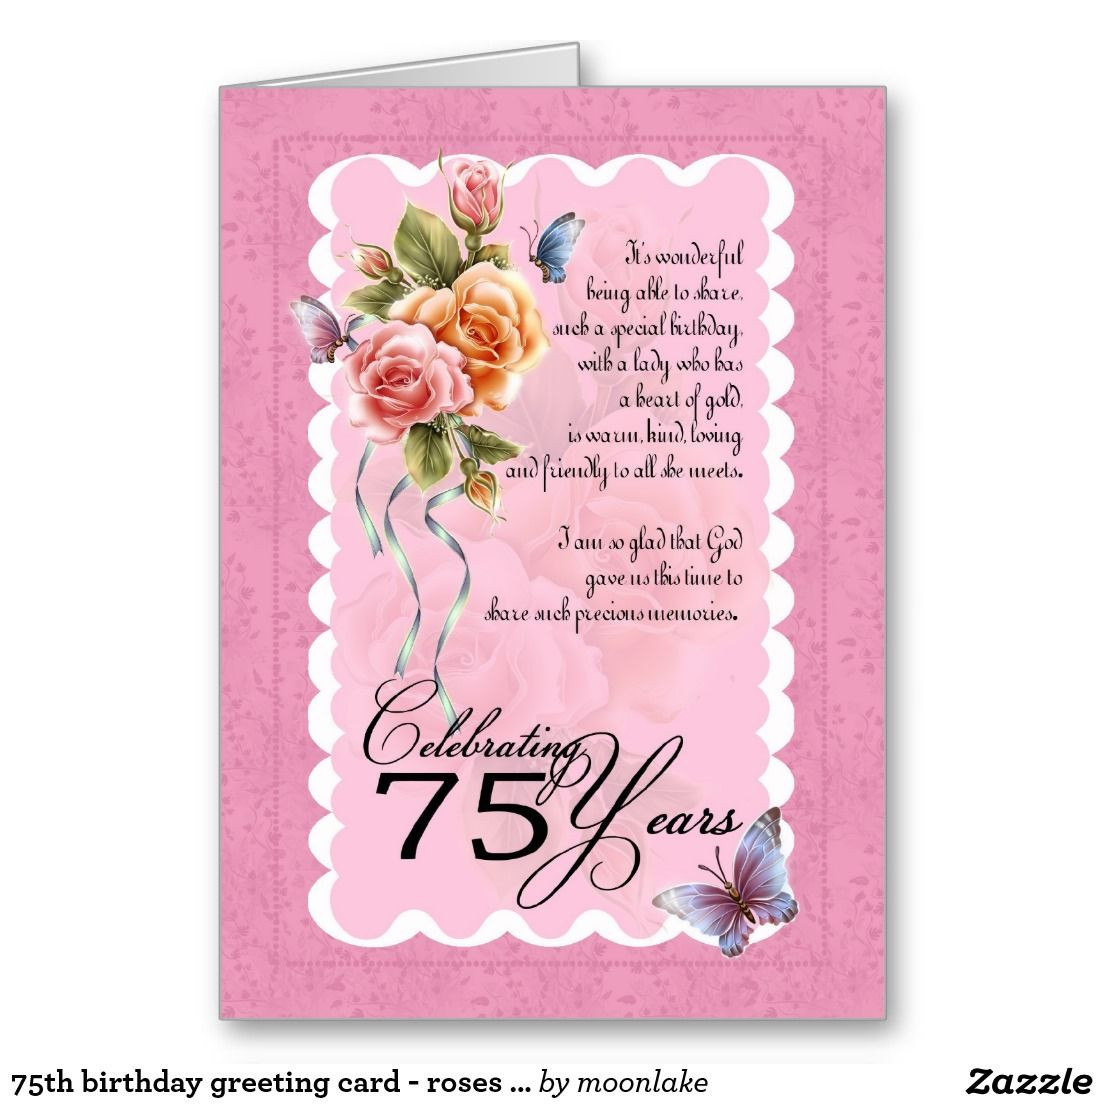 Best ideas about 75th Birthday Wishes . Save or Pin 75th birthday greeting card roses and butterfly Now.